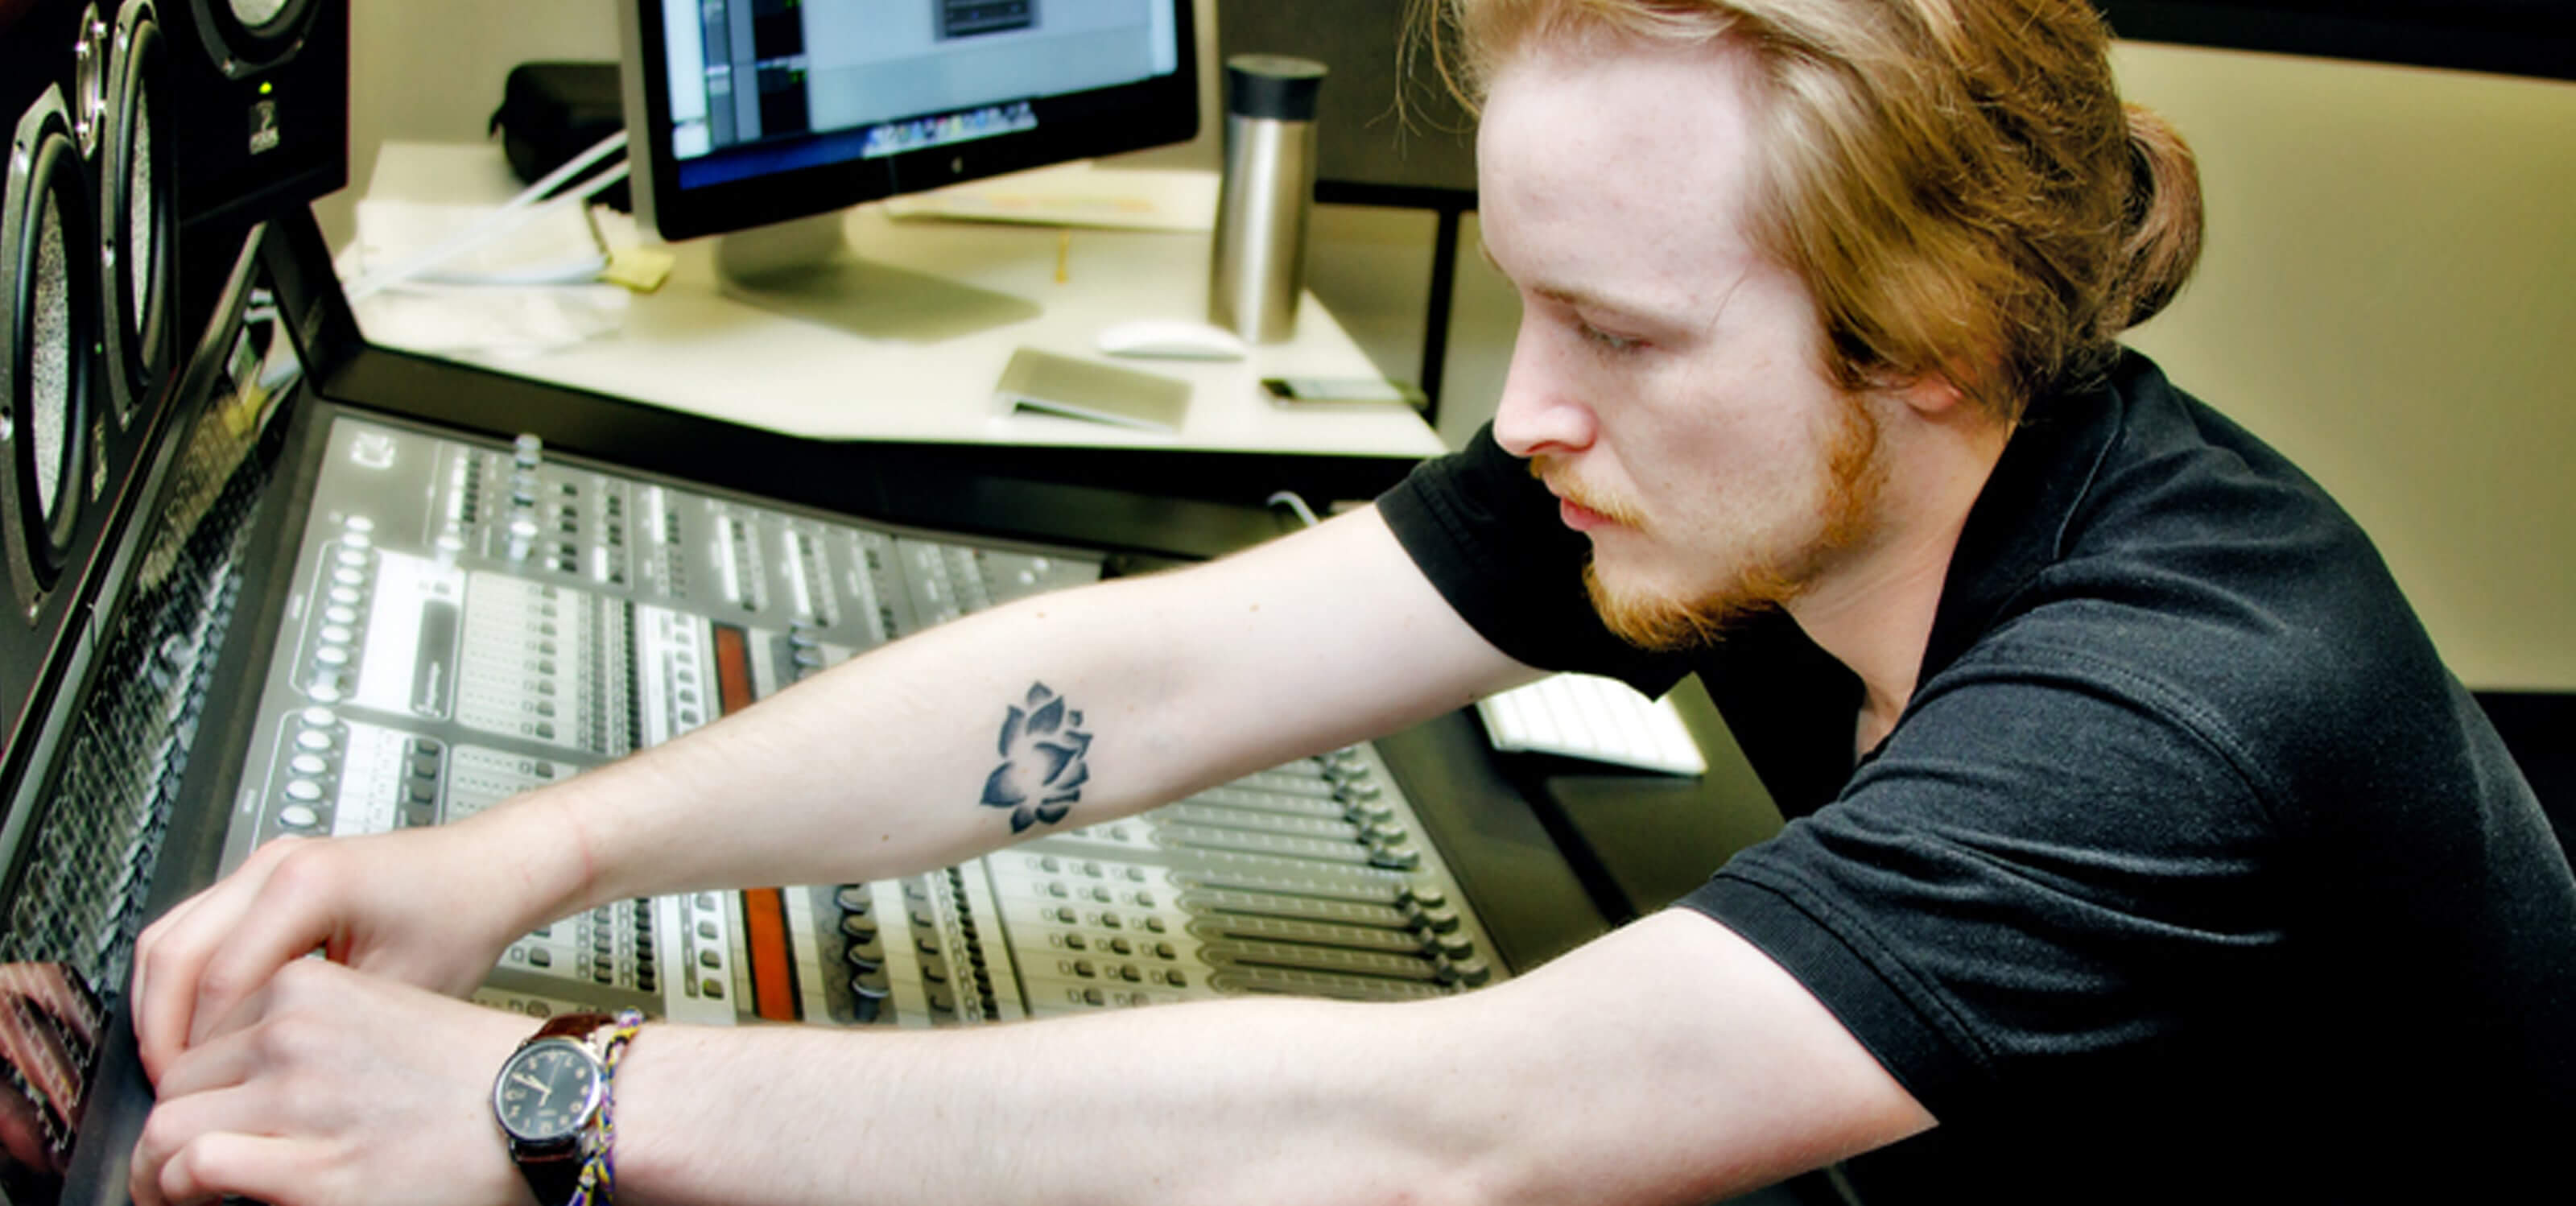 DigiPen student Ian Shores adjusting knobs on a sound board in a DigiPen recording studio